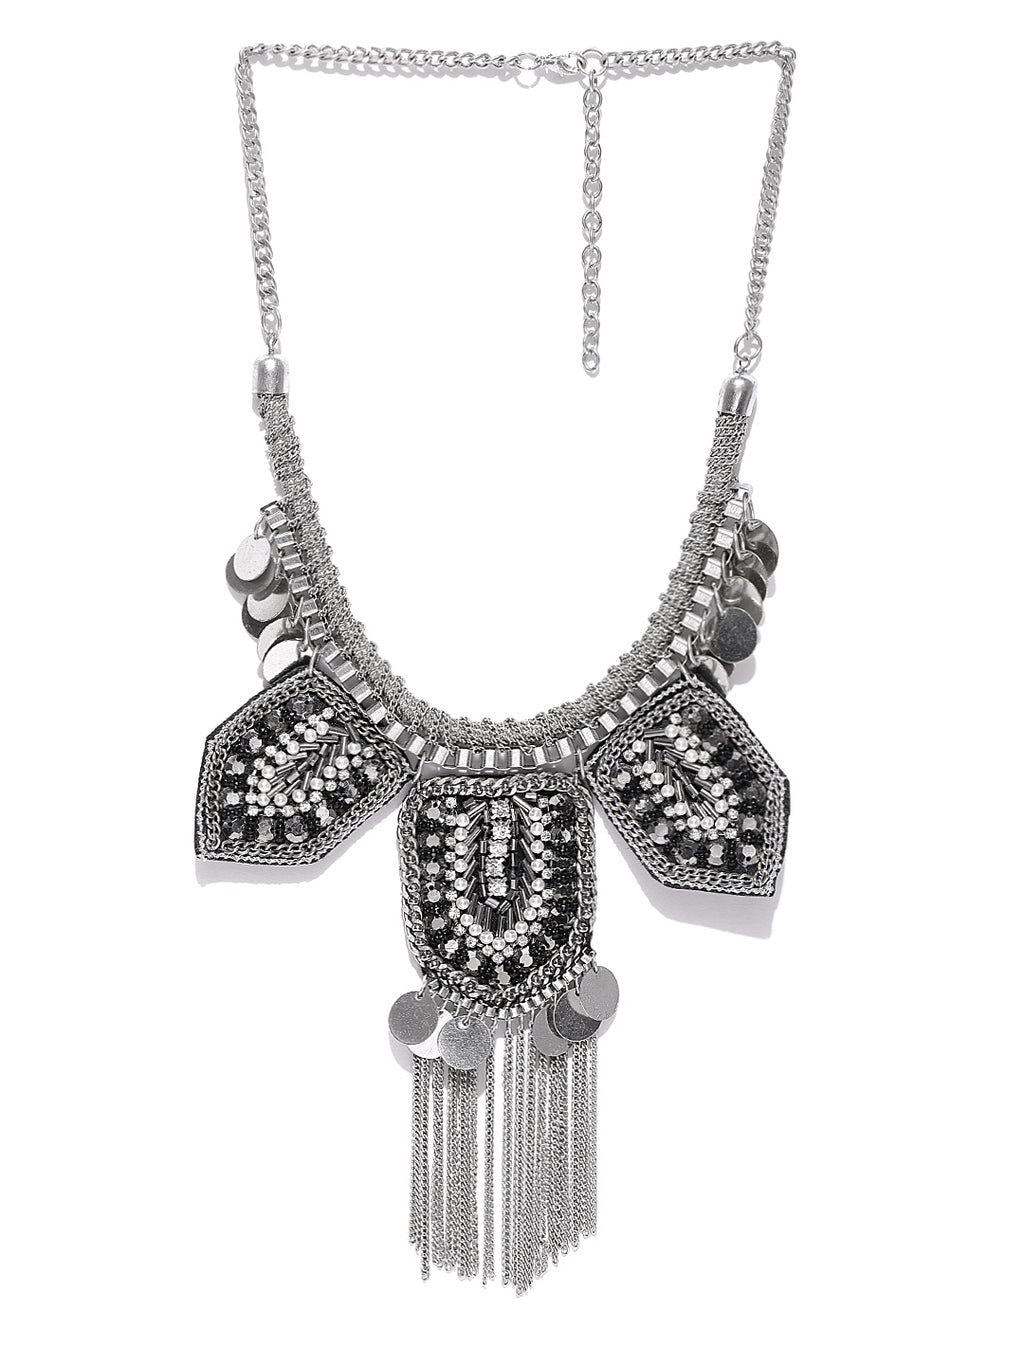 Silver toned statement necklace